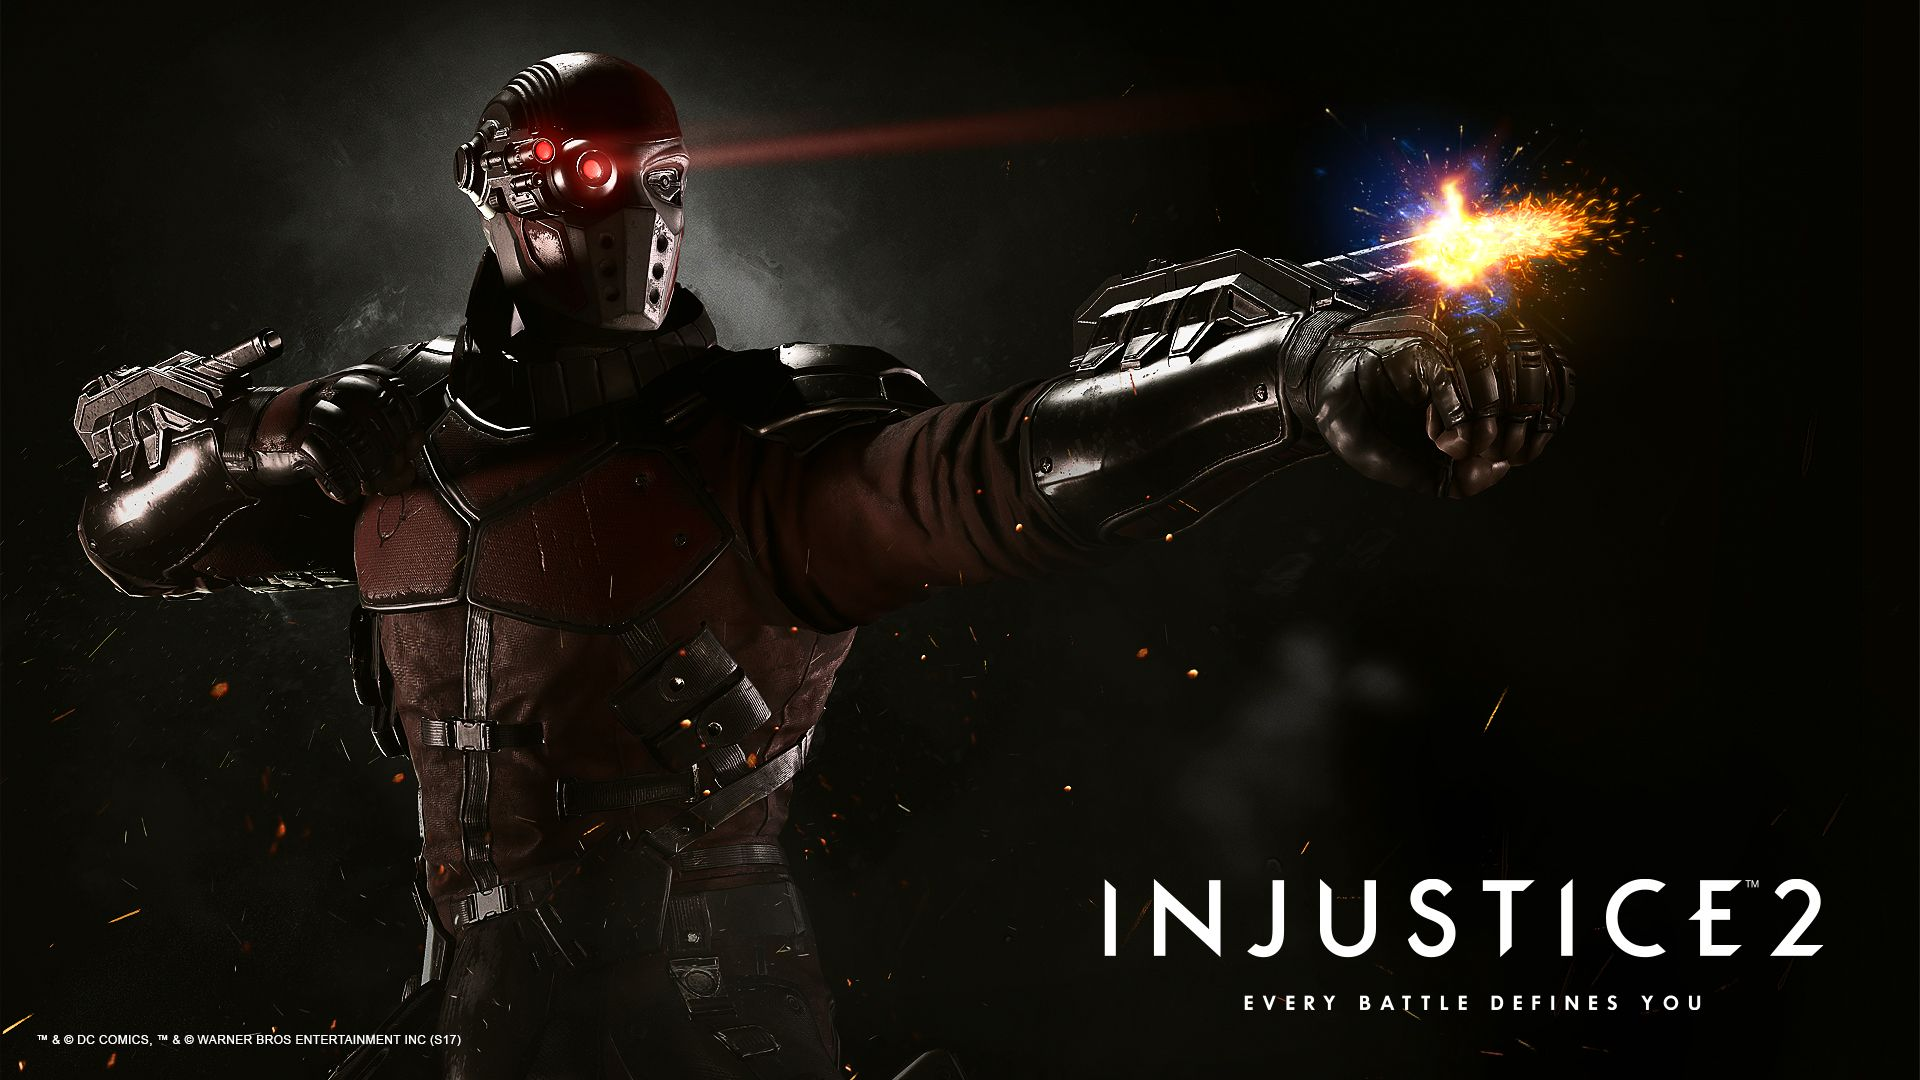 Floyd Lawton (Injustice)